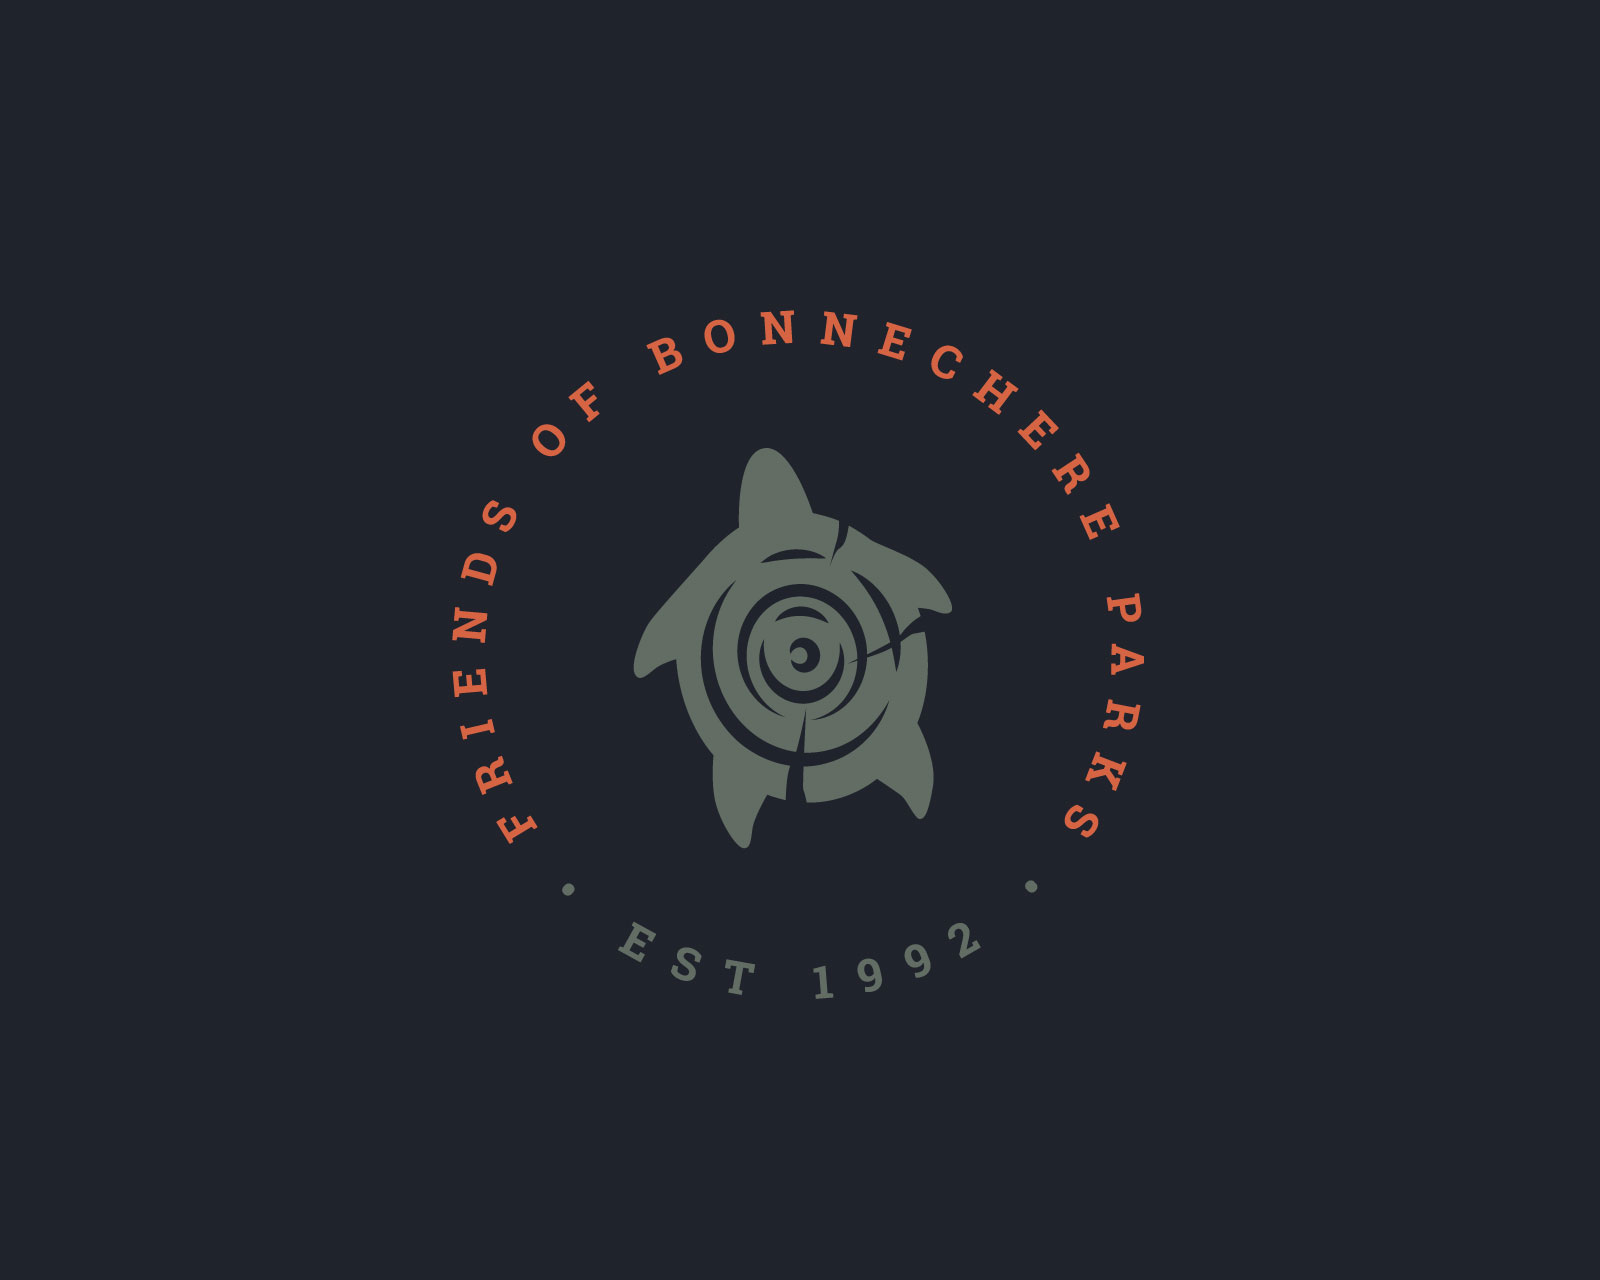 logo of the friends of bonnechere parks